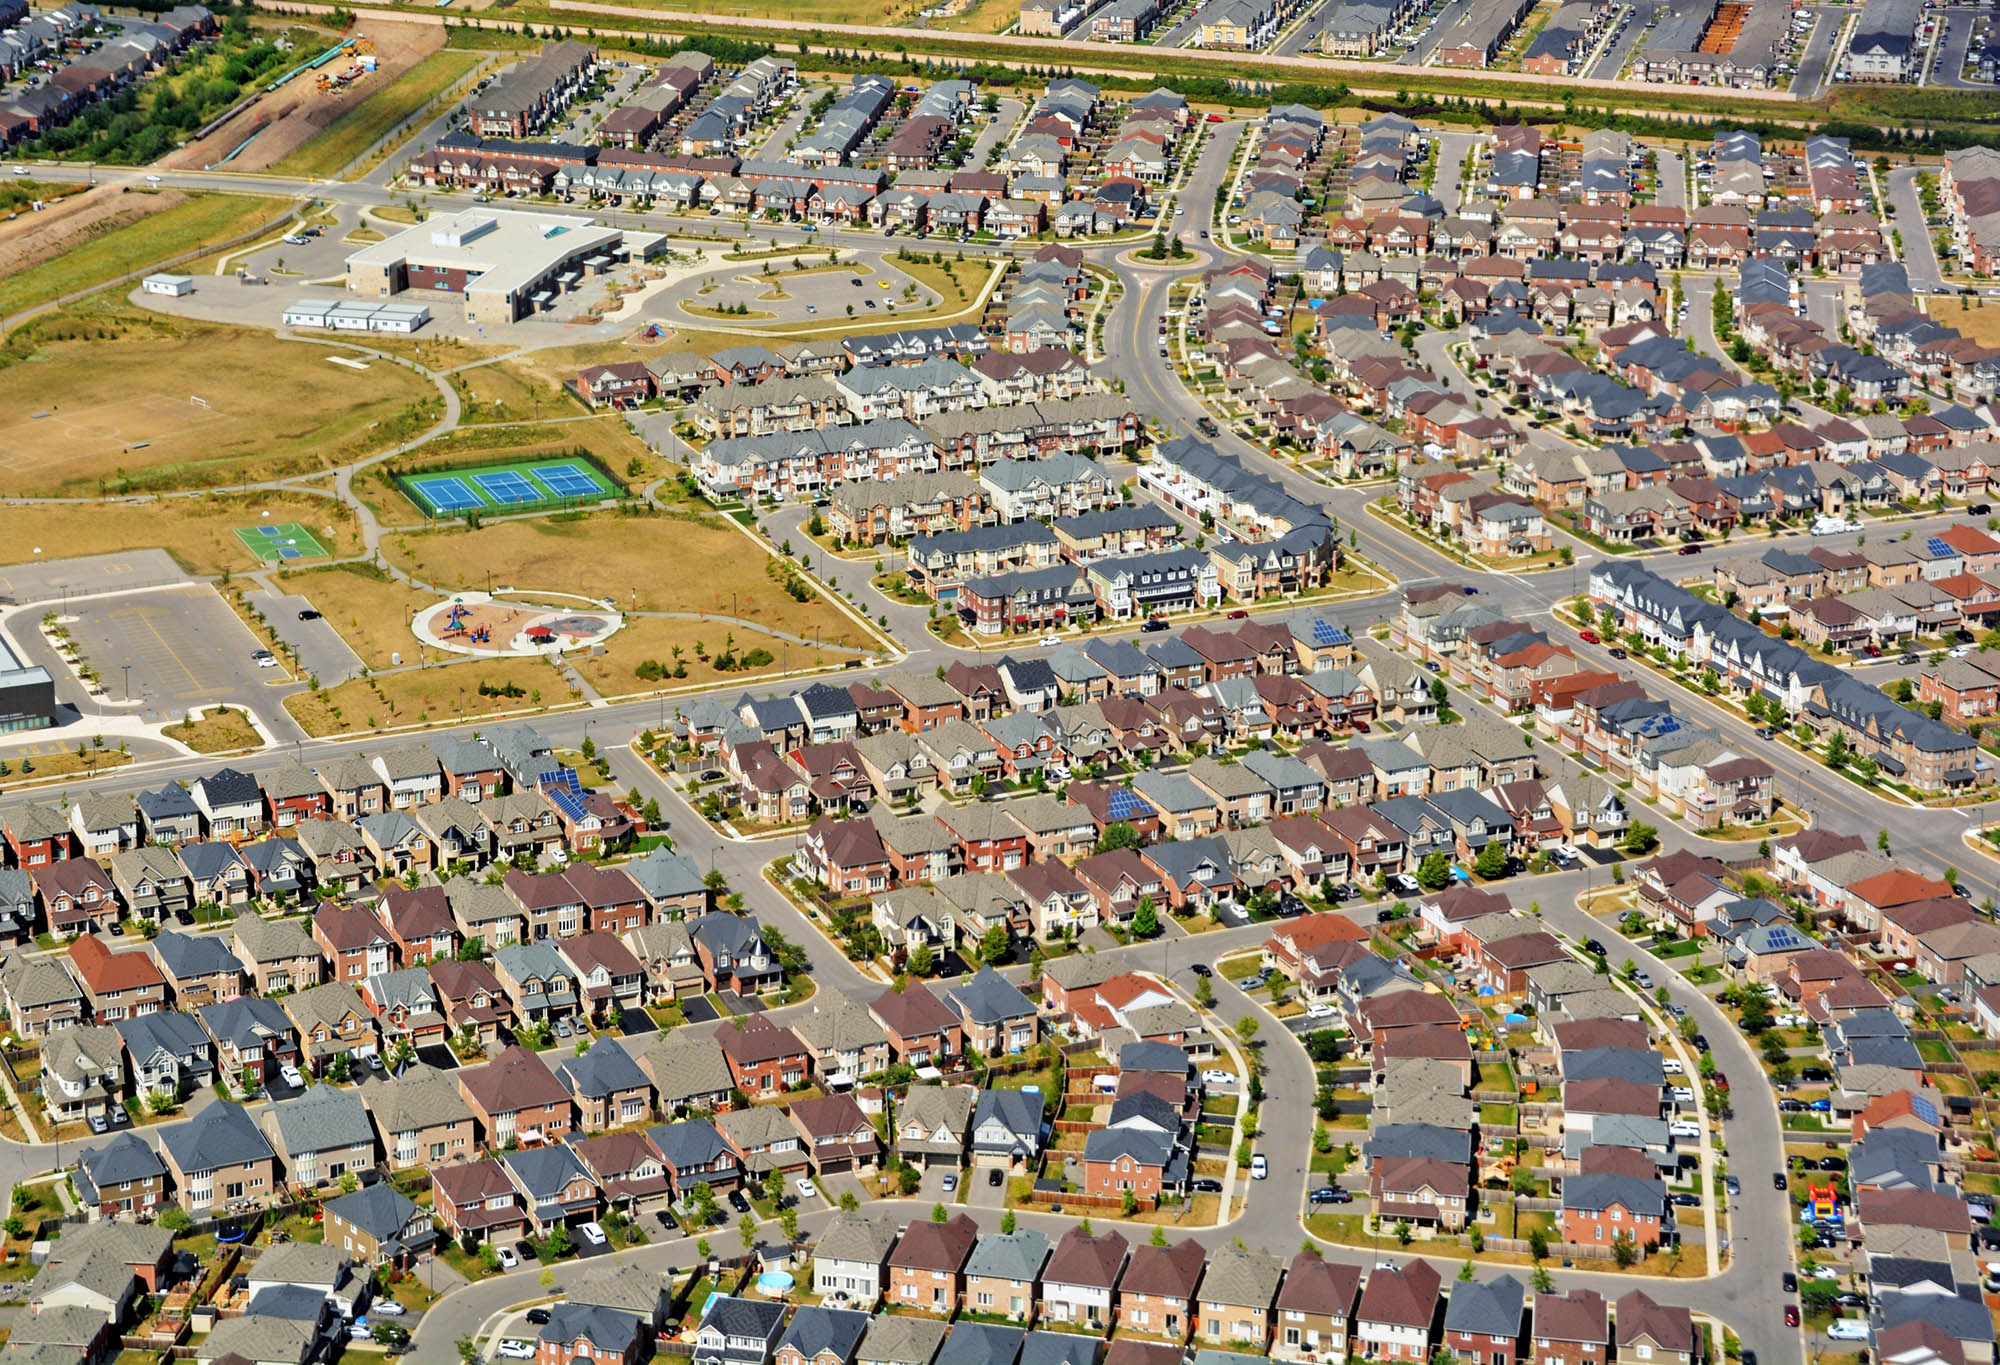 aerial view of a residential neighborhood in the town of Milton,